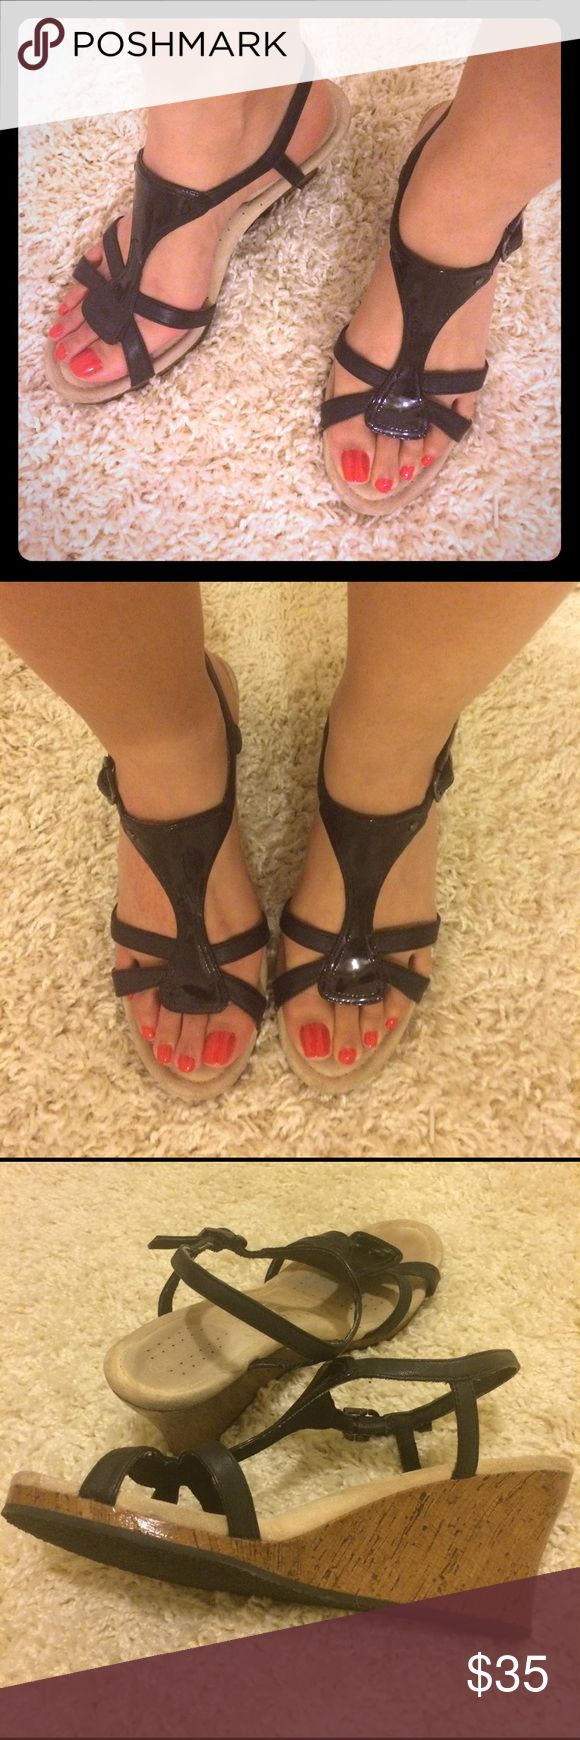 """3"""" BLK PATENT LTHR WEDGES Classy pair of 3"""" patent leather, summer sandals. These are Rockport with Adidas """"Adiprene"""" technology, which is similar to memory foam. (I believe both brands were under the same parent co at the time) Super comfy! Lightly warn. Straps around ankle. Rockport Shoes Wedges"""